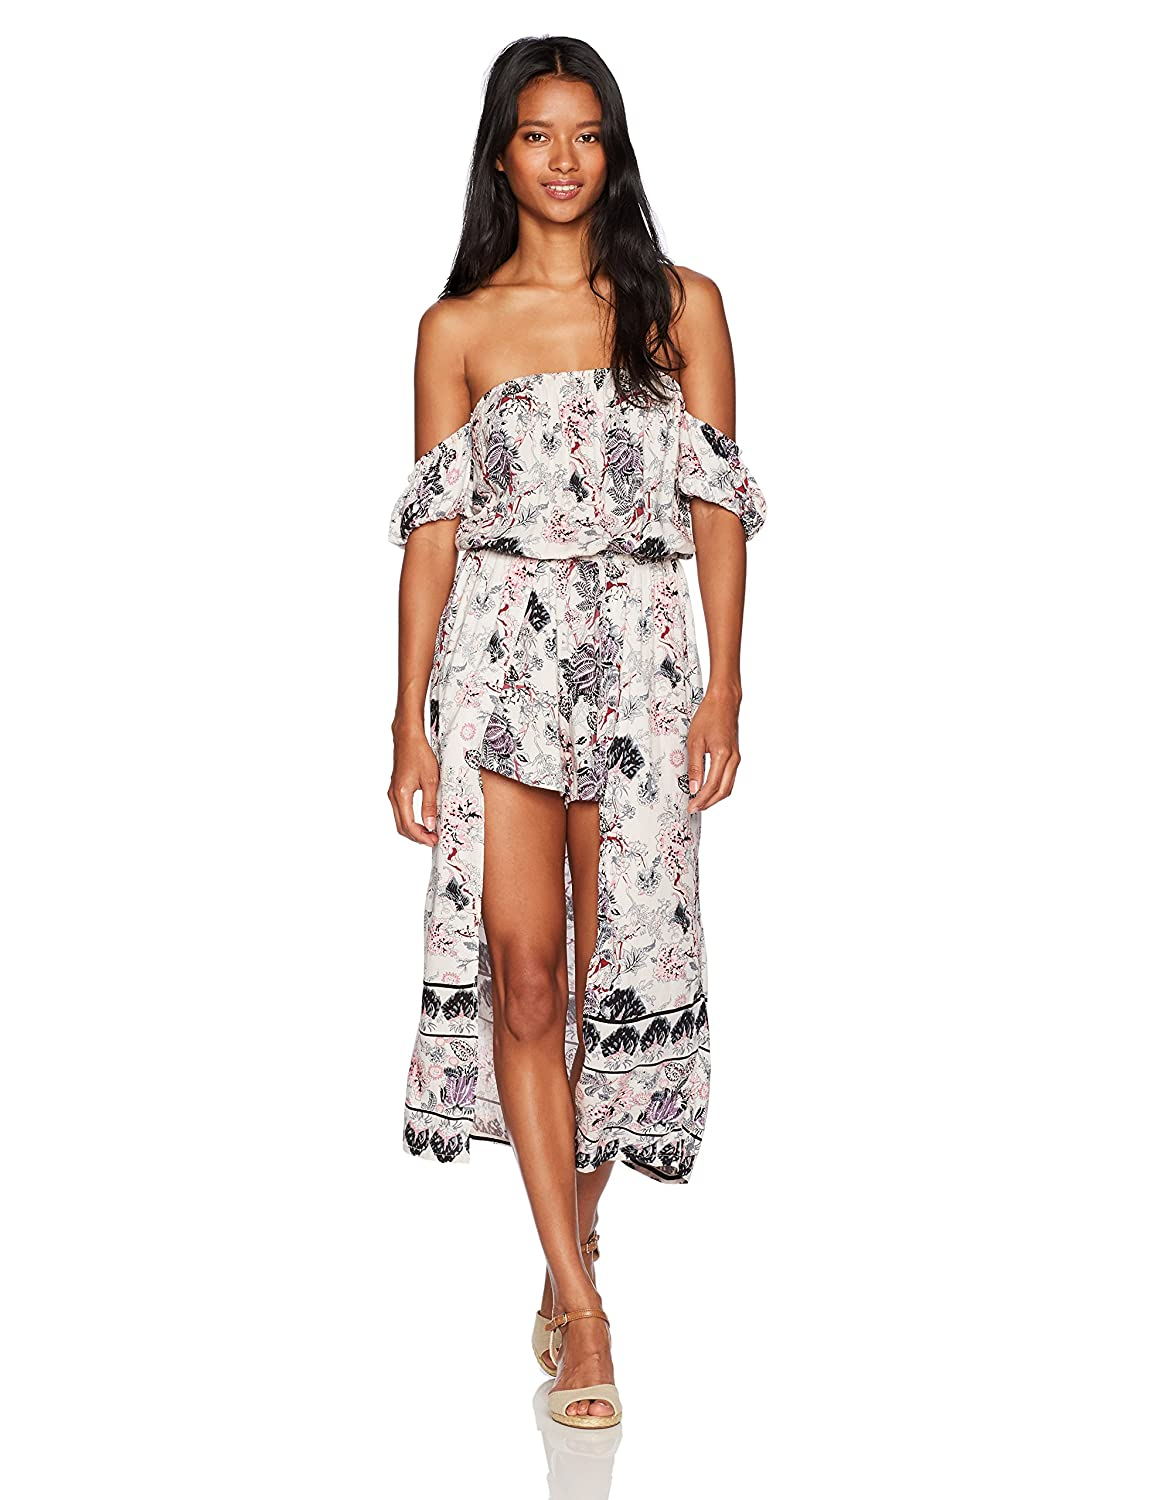 Angie Women's Off The Shoulder Printed Maxi Romper Angie Juniors Q5R83-MS17